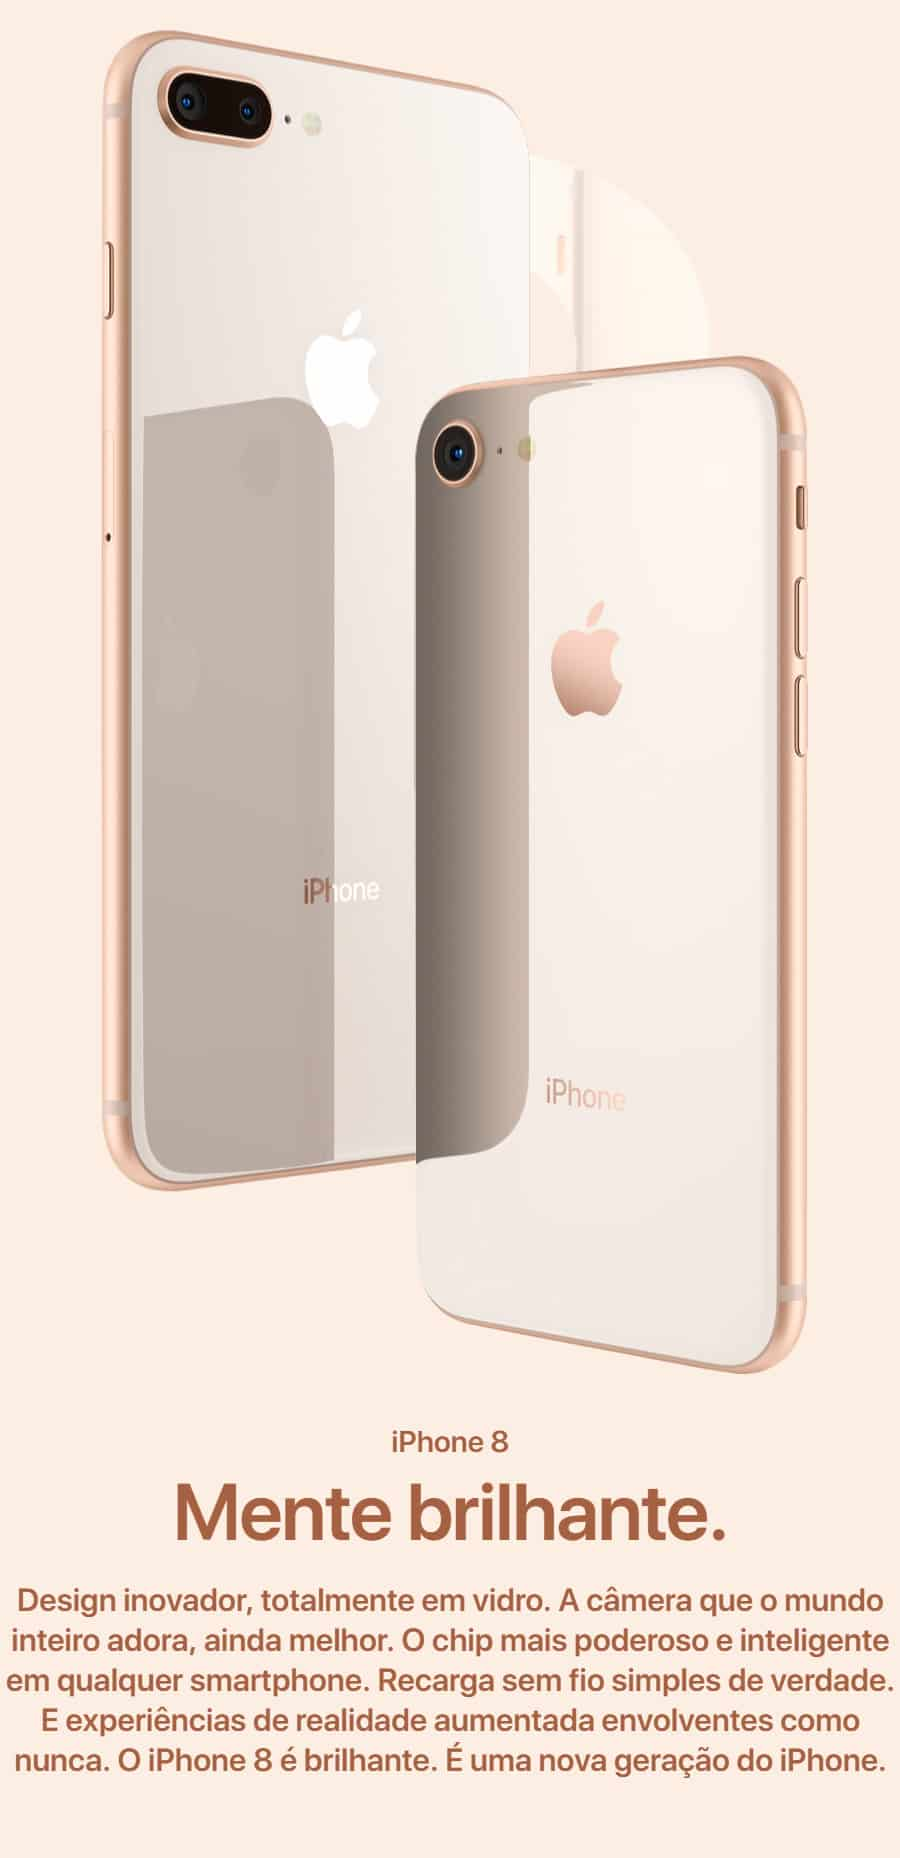 Celular Apple iPhone 8 64 GB Unlocked LIVRE DE TAXAS ALFANDEGARIAS